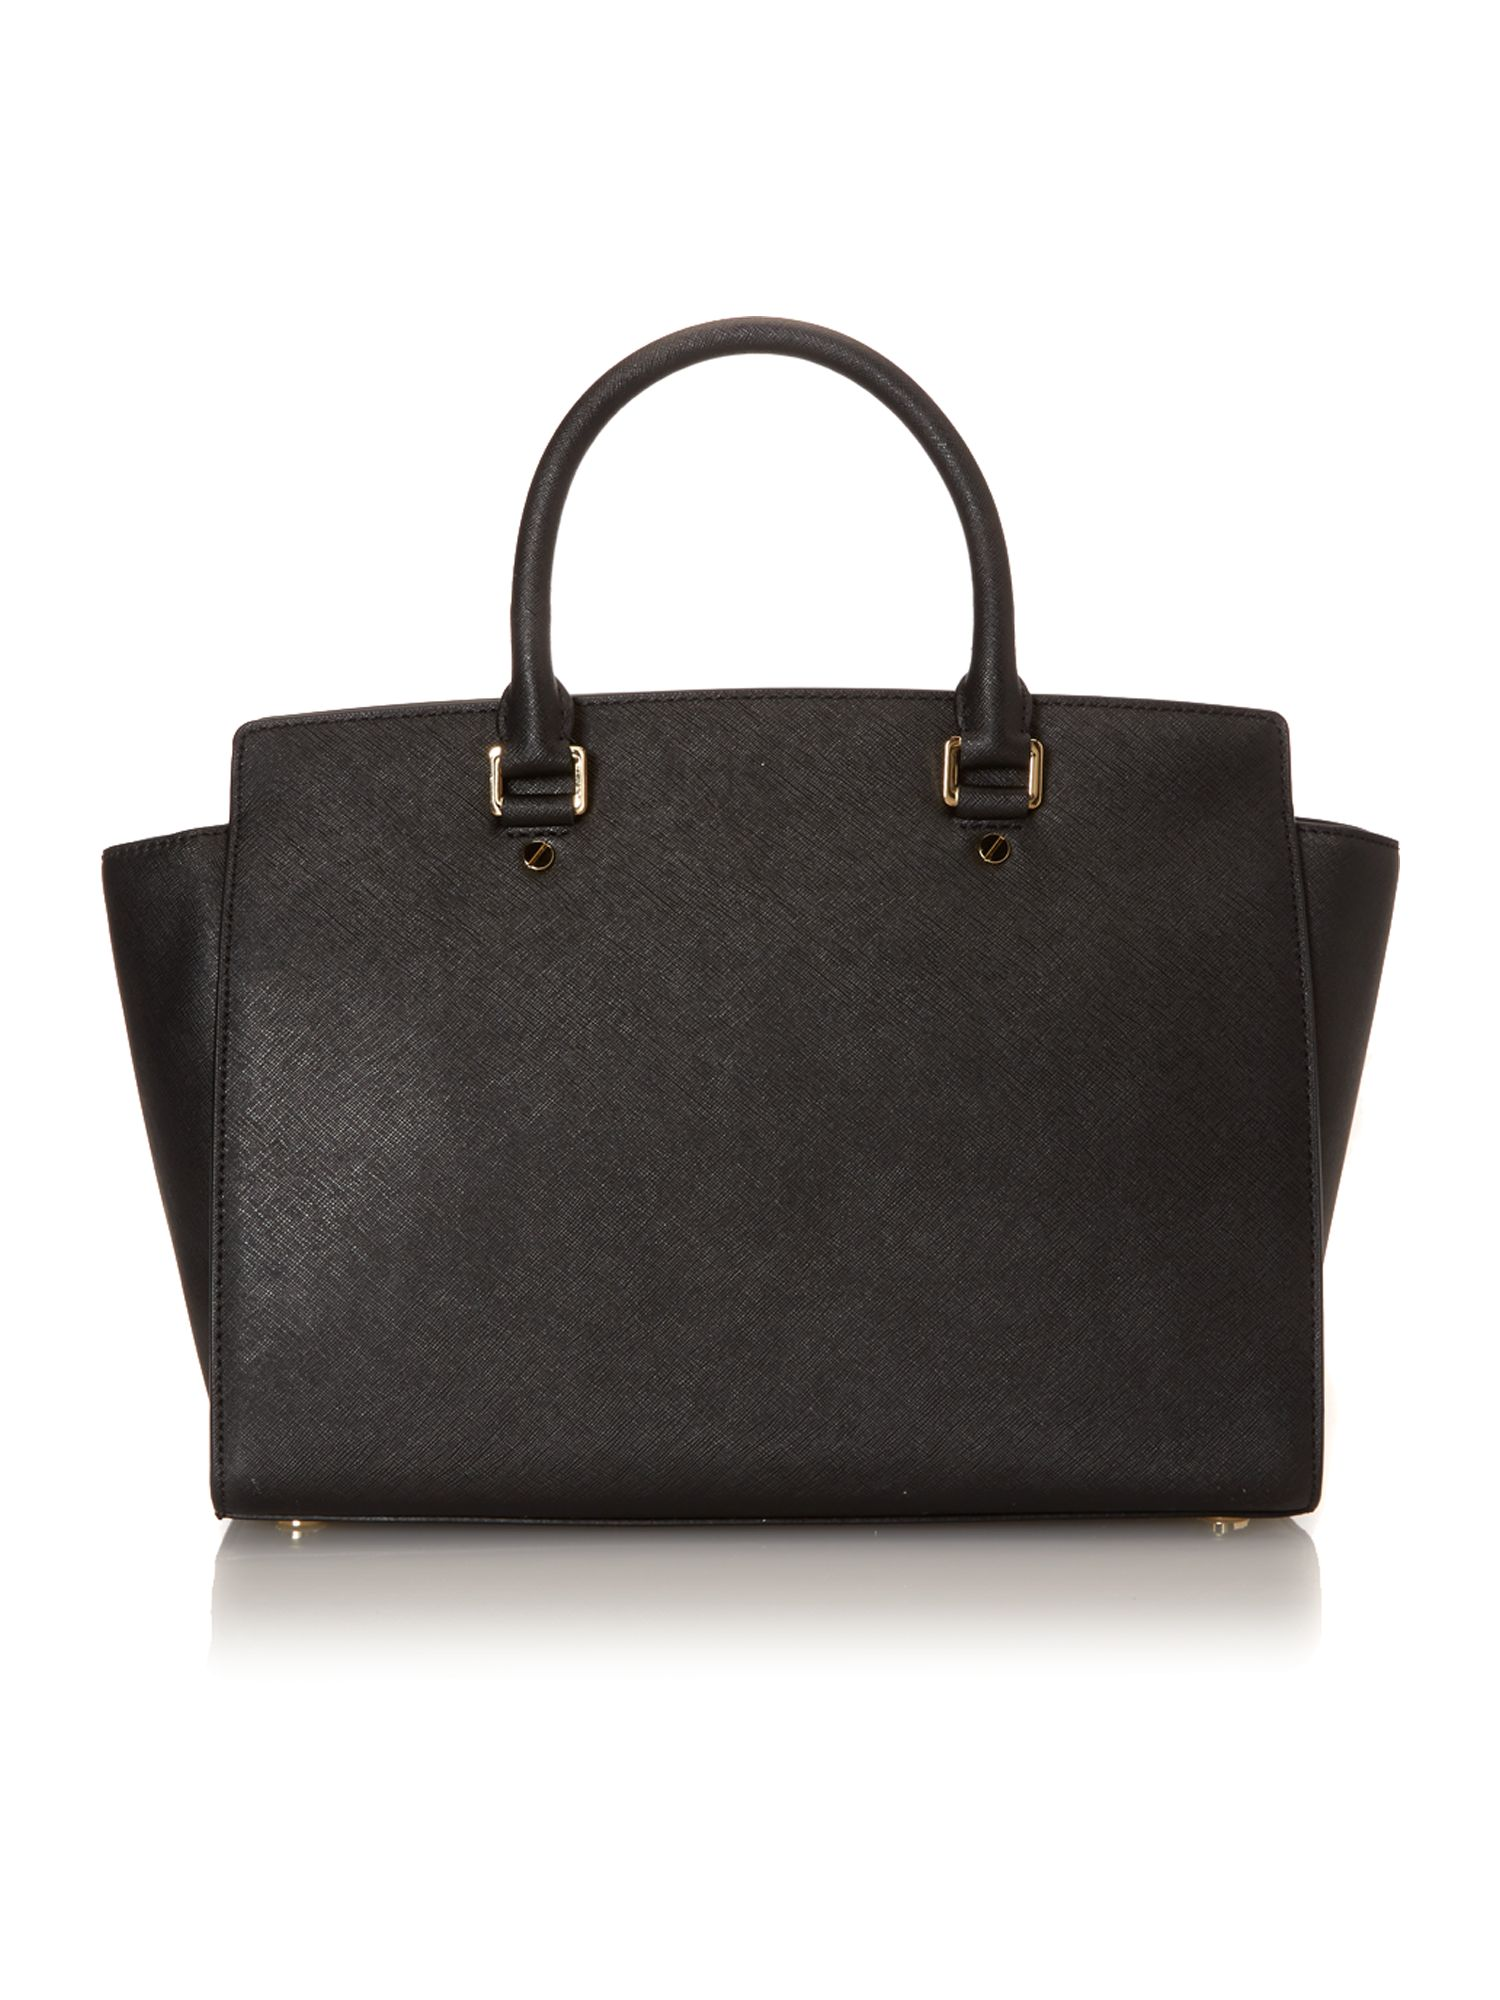 Selma black tote bag